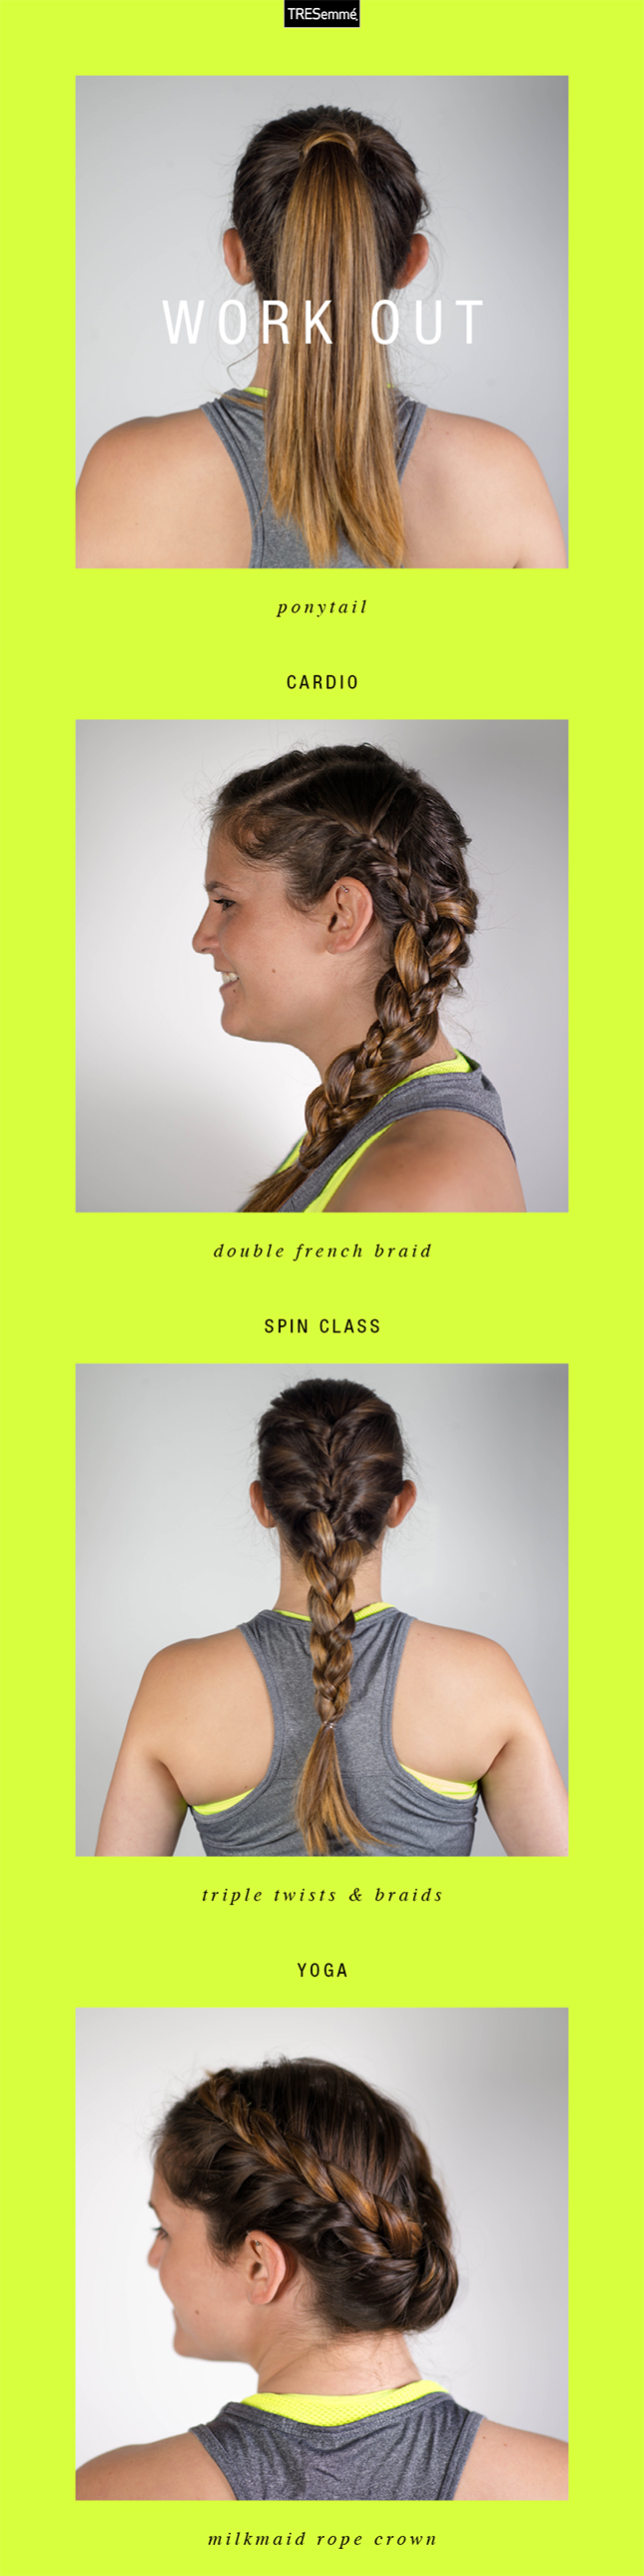 Gone Are The Days Of Equating Working Out To Looking Like A Hot Mess Try One Of These Looks To Get Womens Hairstyles Sporty Hairstyles Sharon Stone Hairstyles